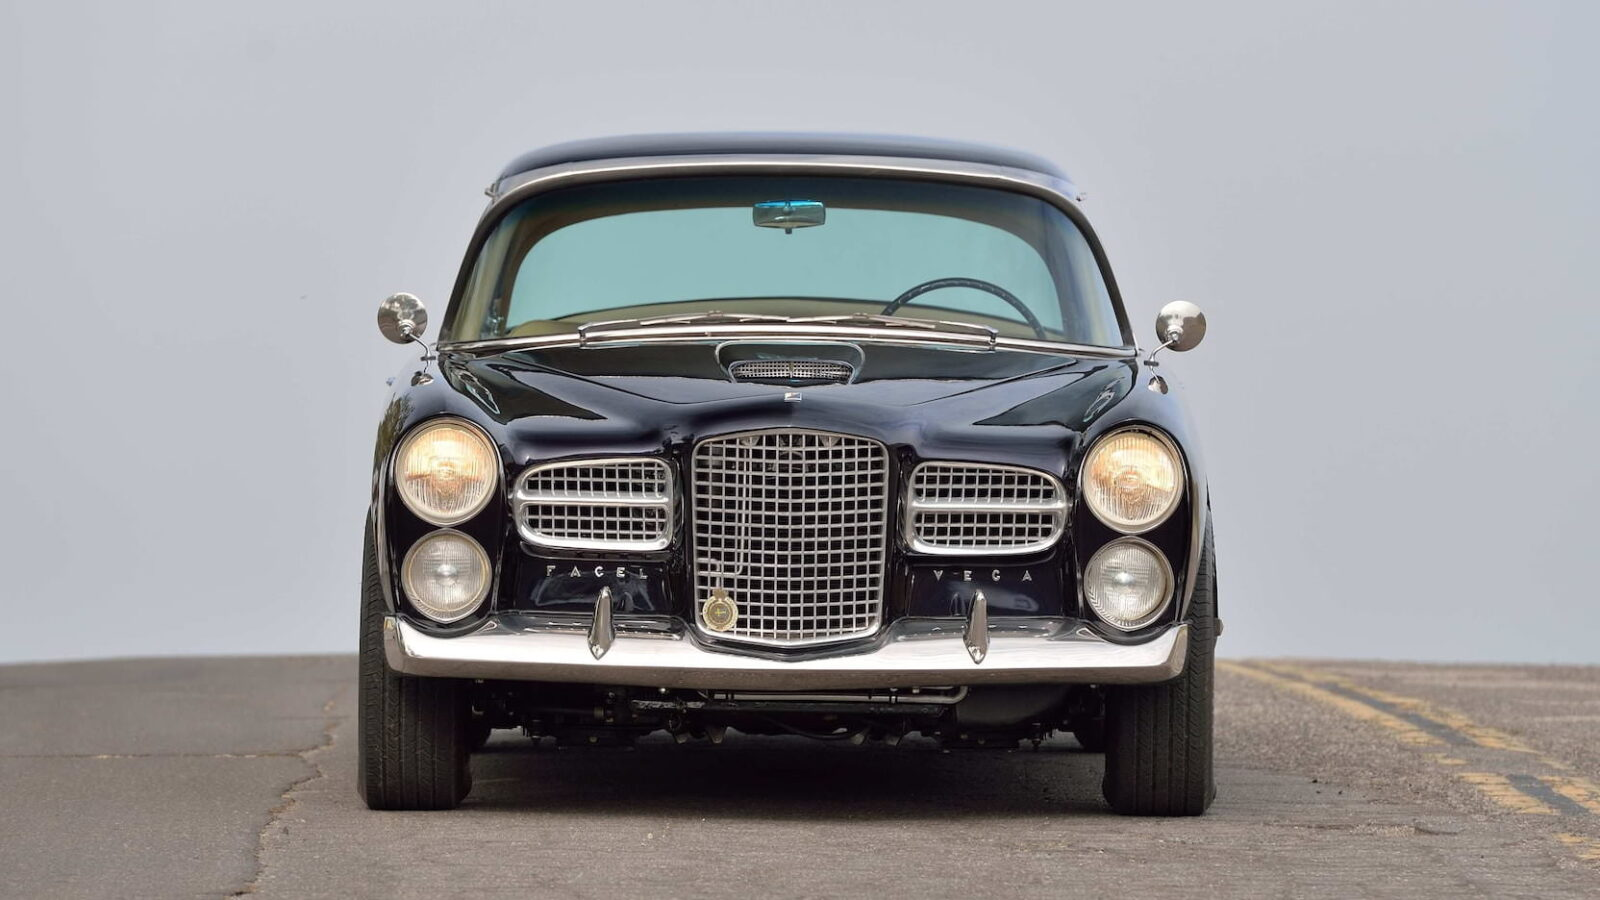 Facel Vega 13 1600x900 - 1 of 36 Ever Made: 1958 Facel Vega FV4 Typhoon